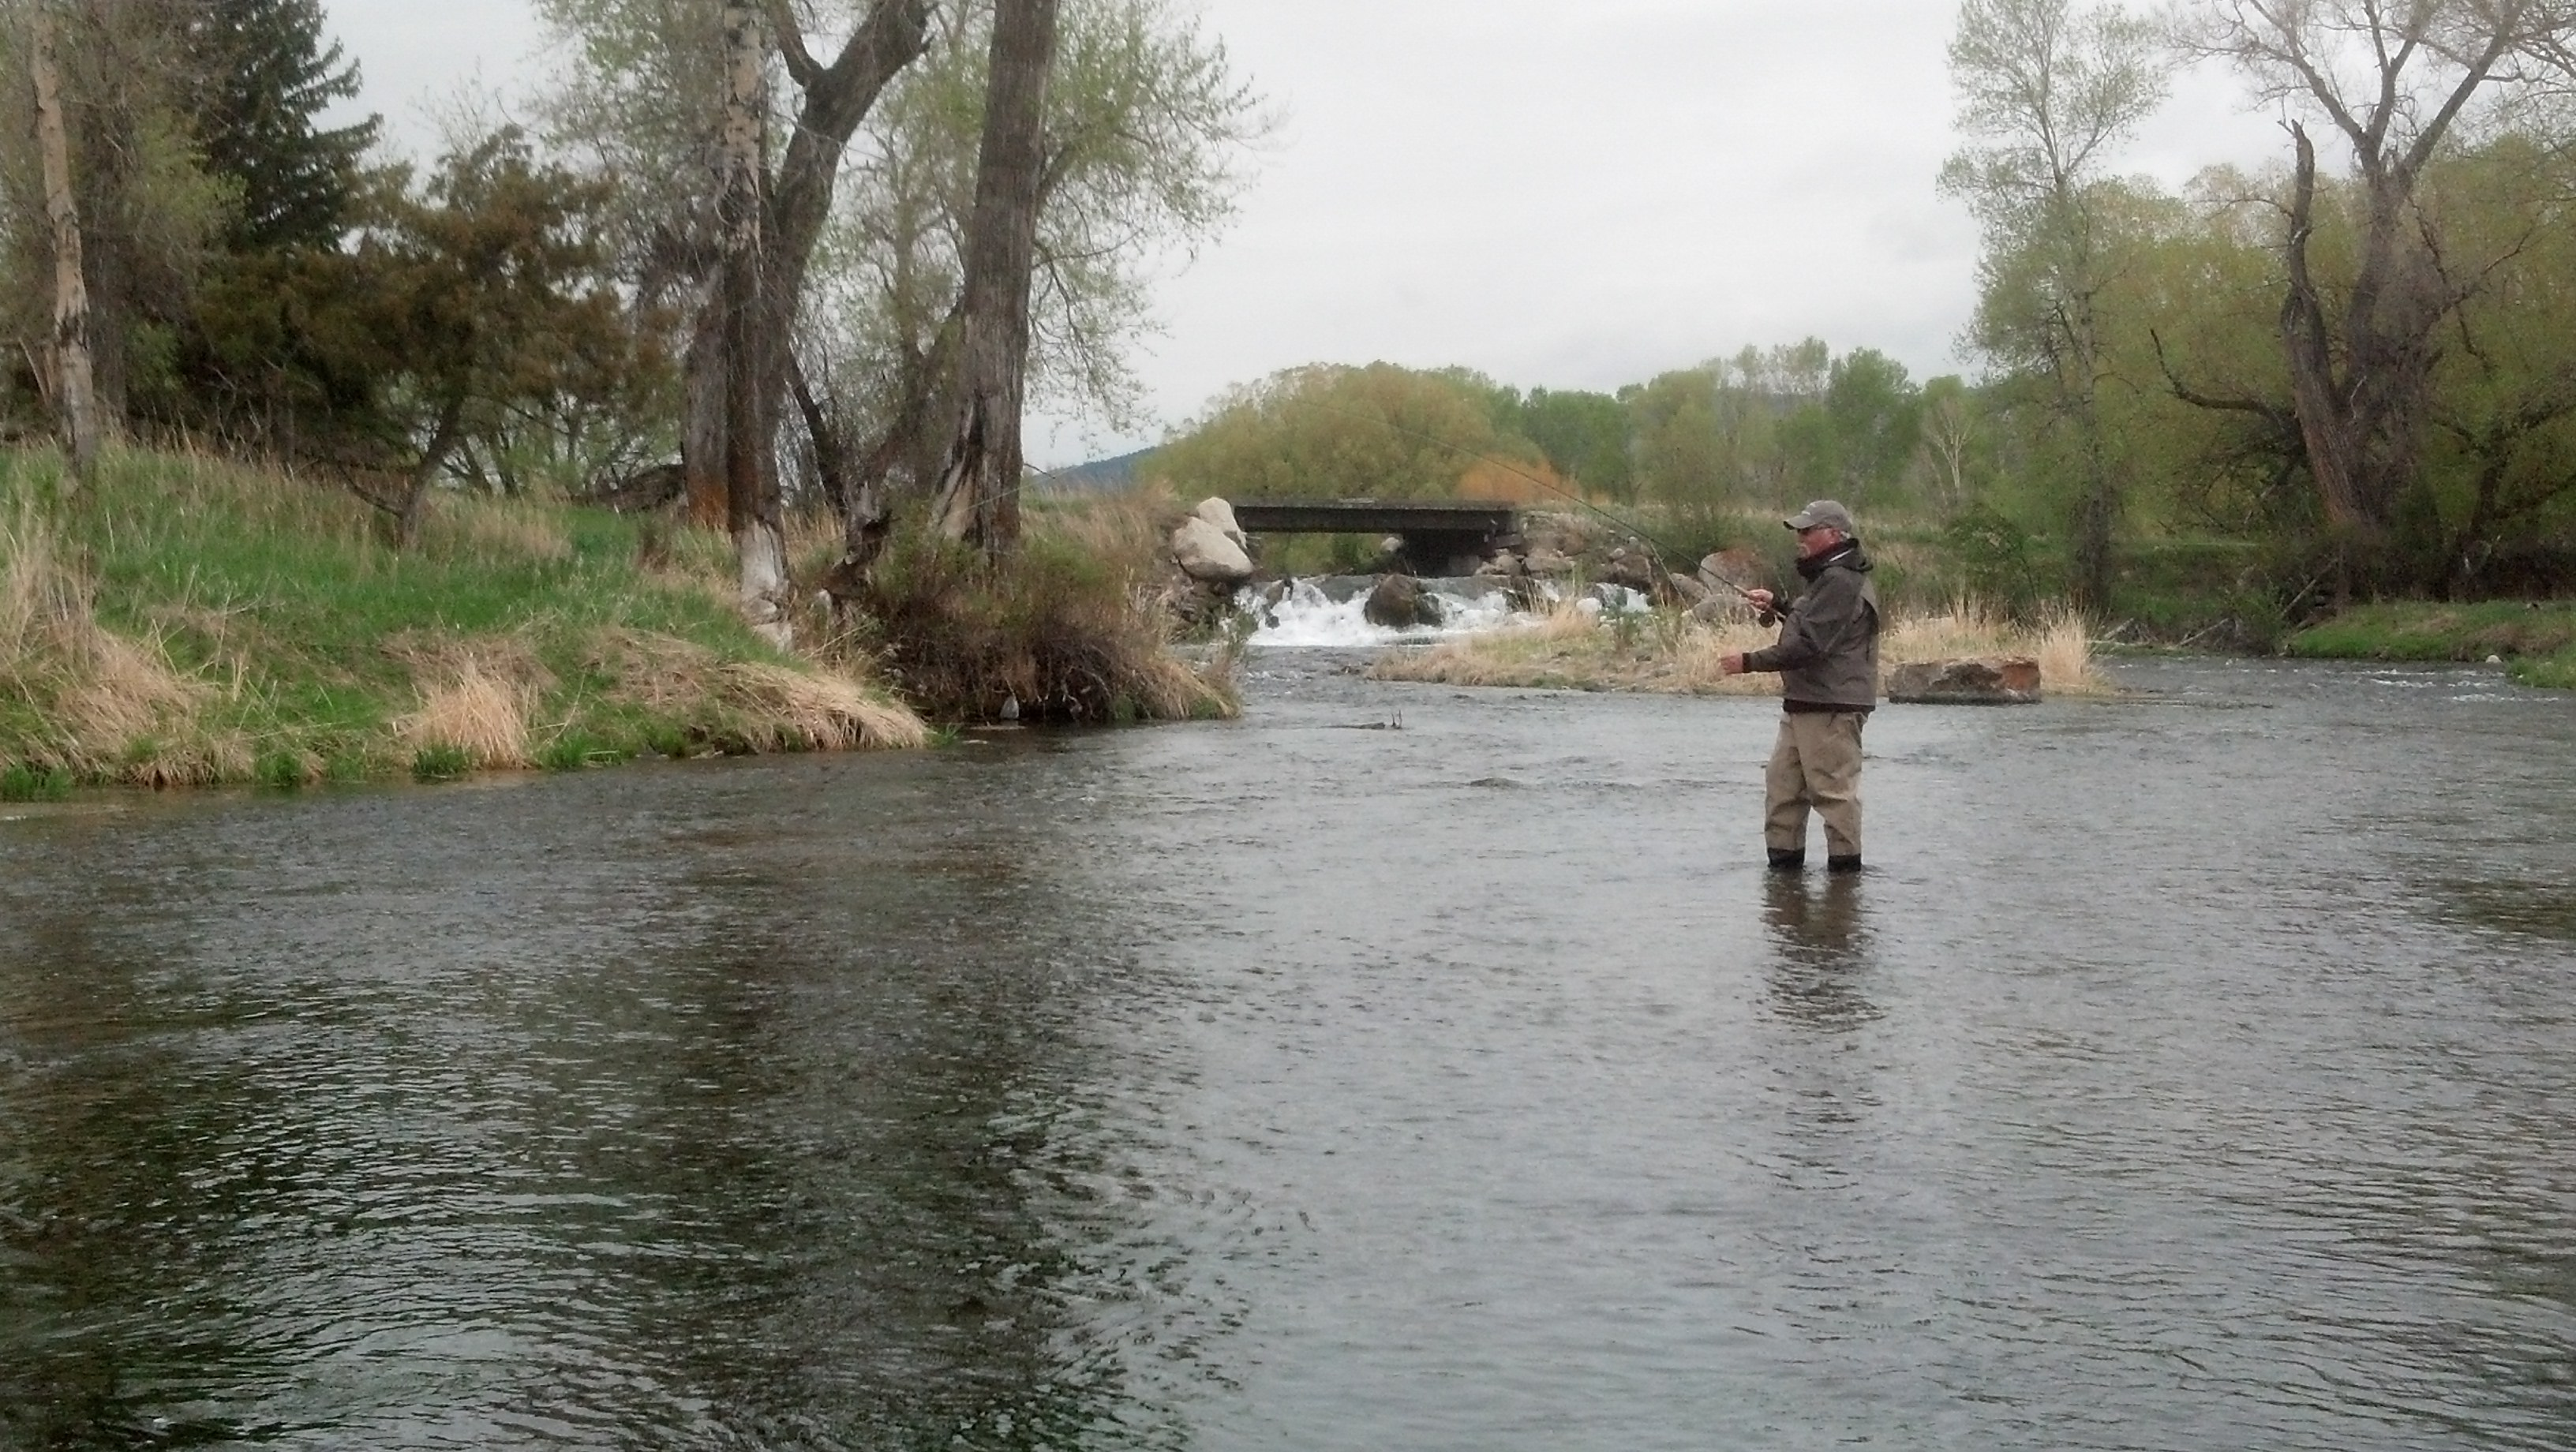 Wade fishing on Depuys Spring Creek